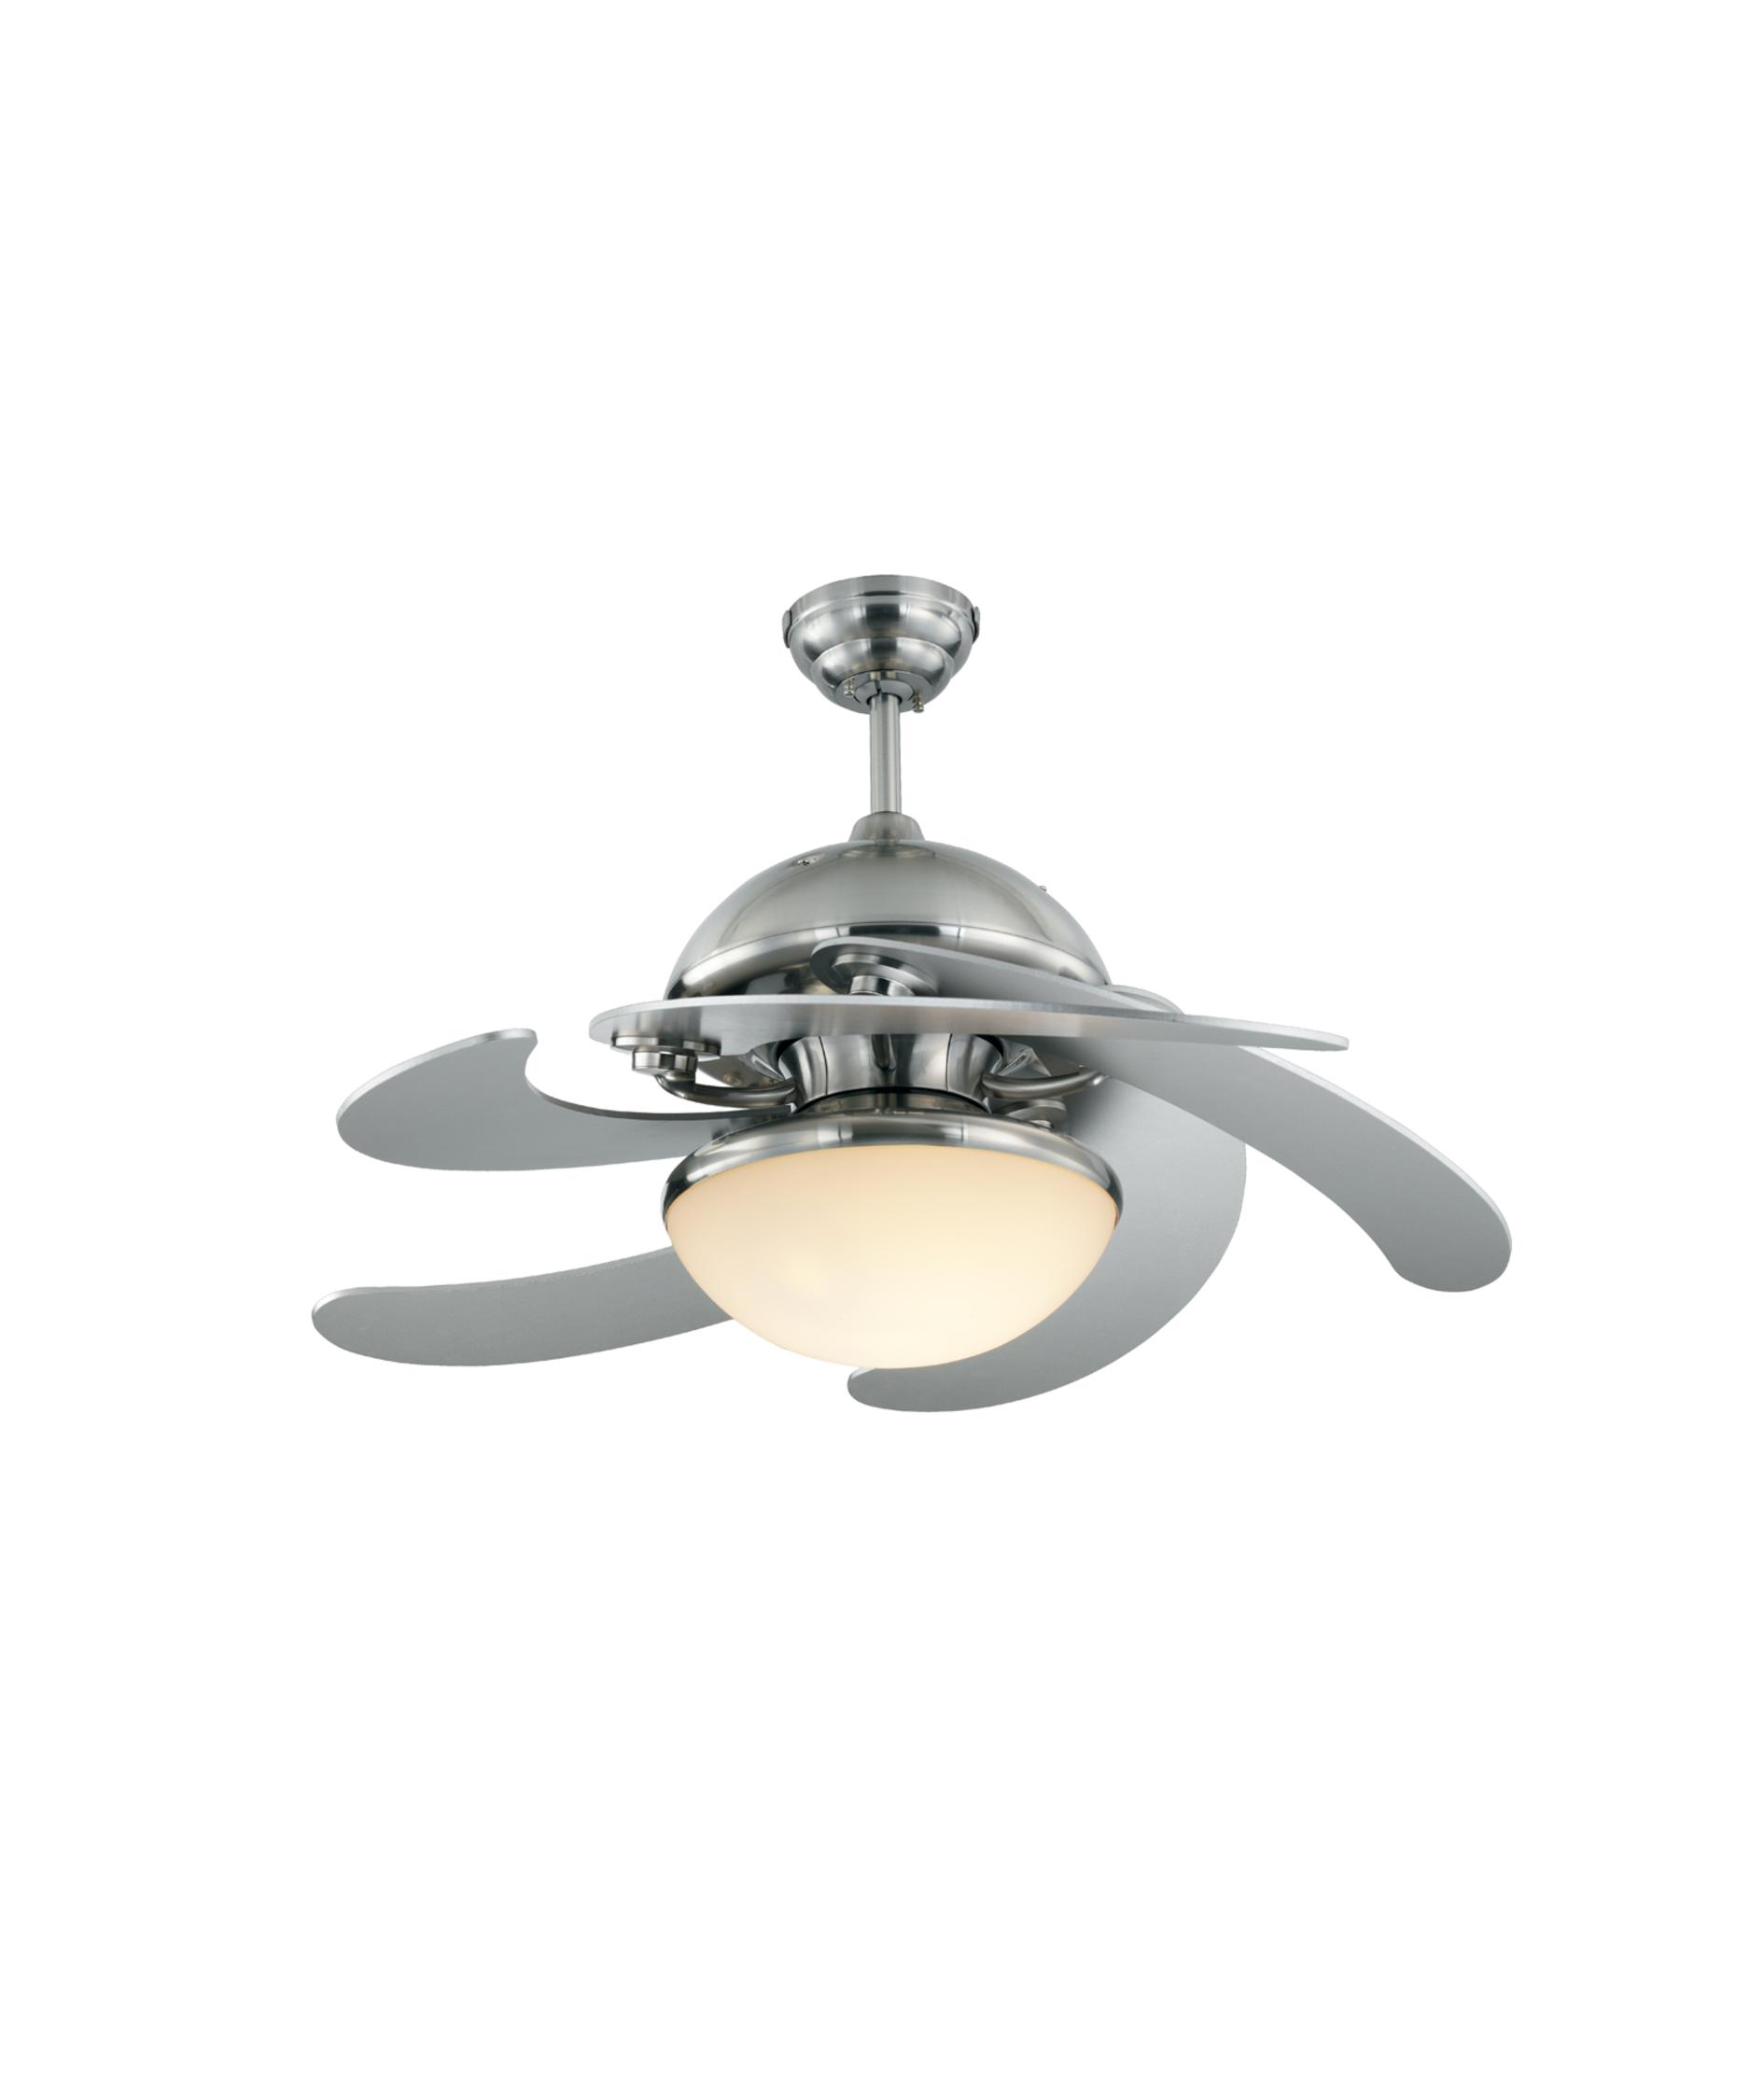 Monte Carlo Ceiling Fans Parts Stunning Monte Carlo Ceiling Fan